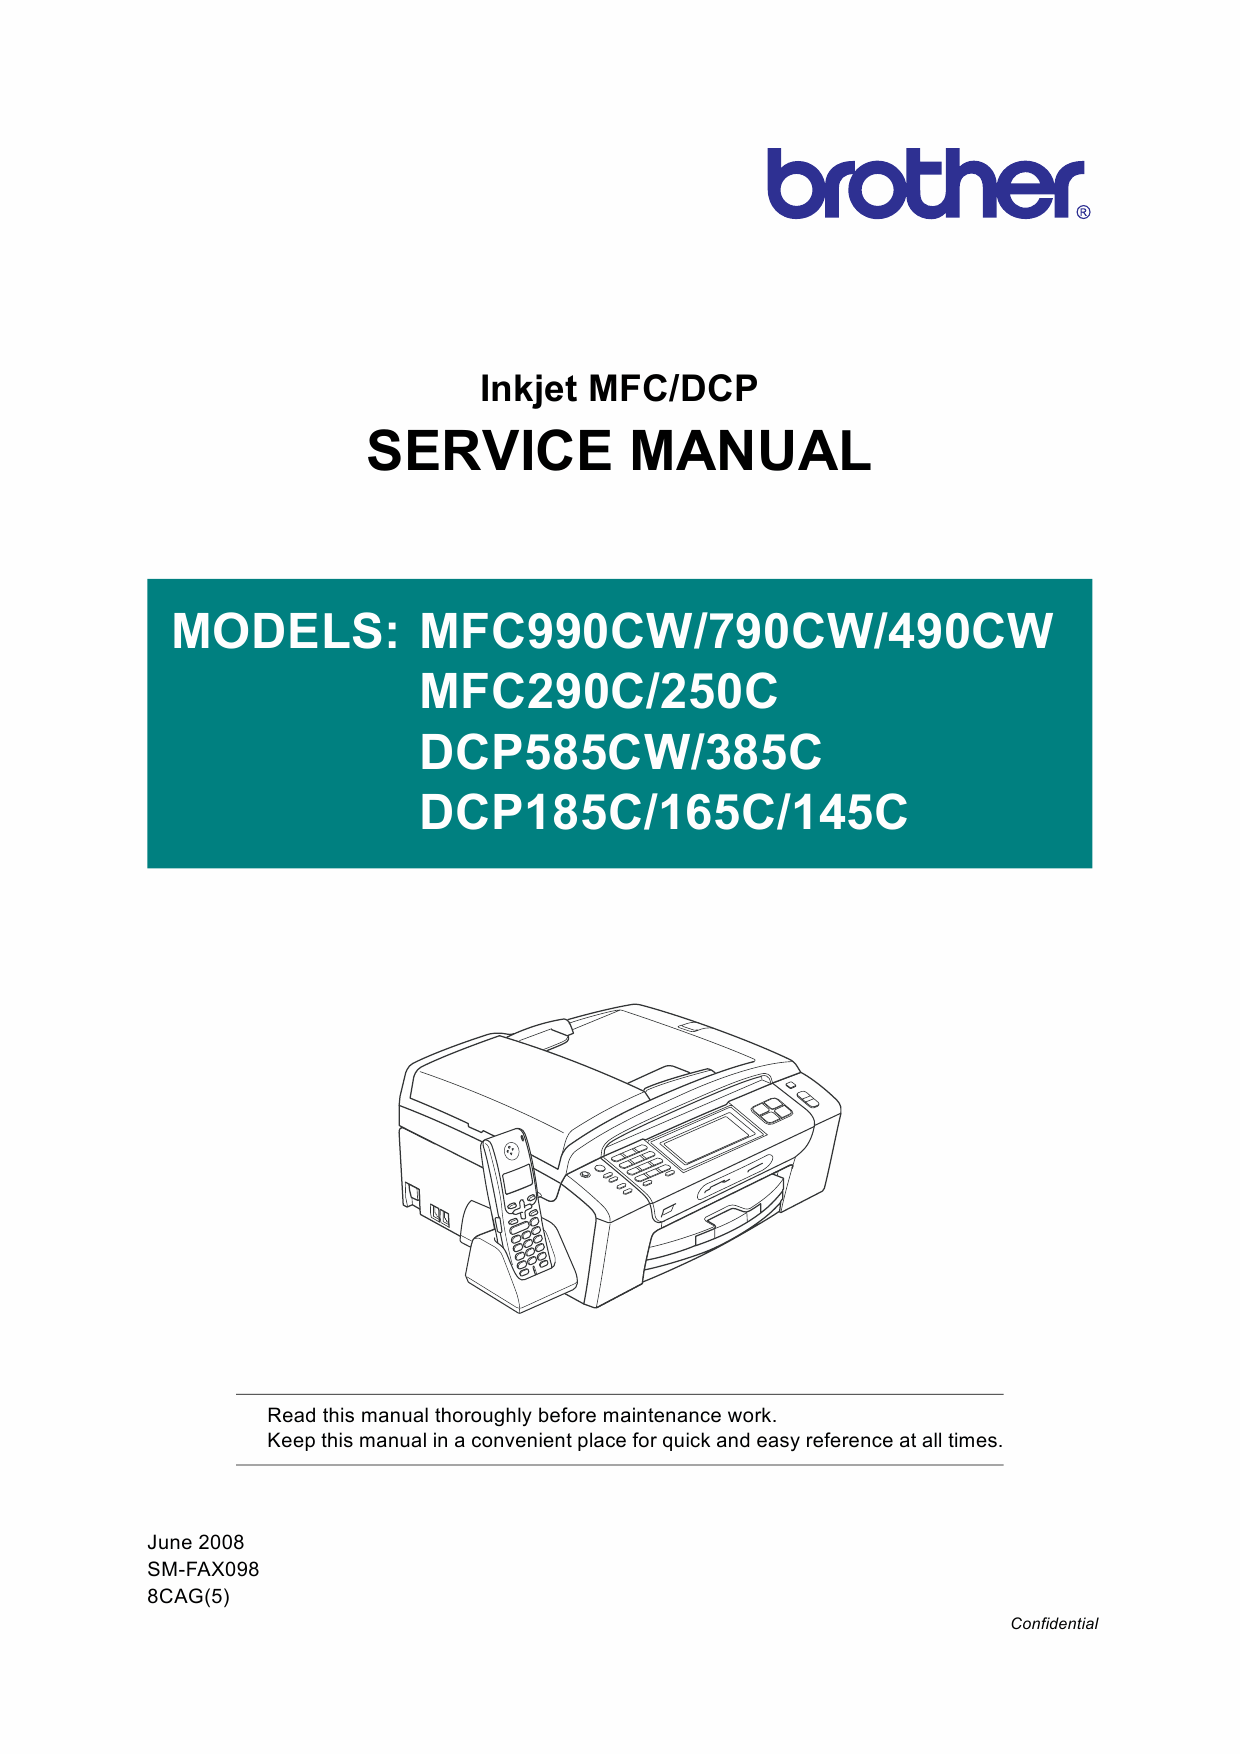 Brother Inkjet-MFC 250 290 490 790 990 C CW DCP145 165 185 285 585 C-CW Service Manual-1